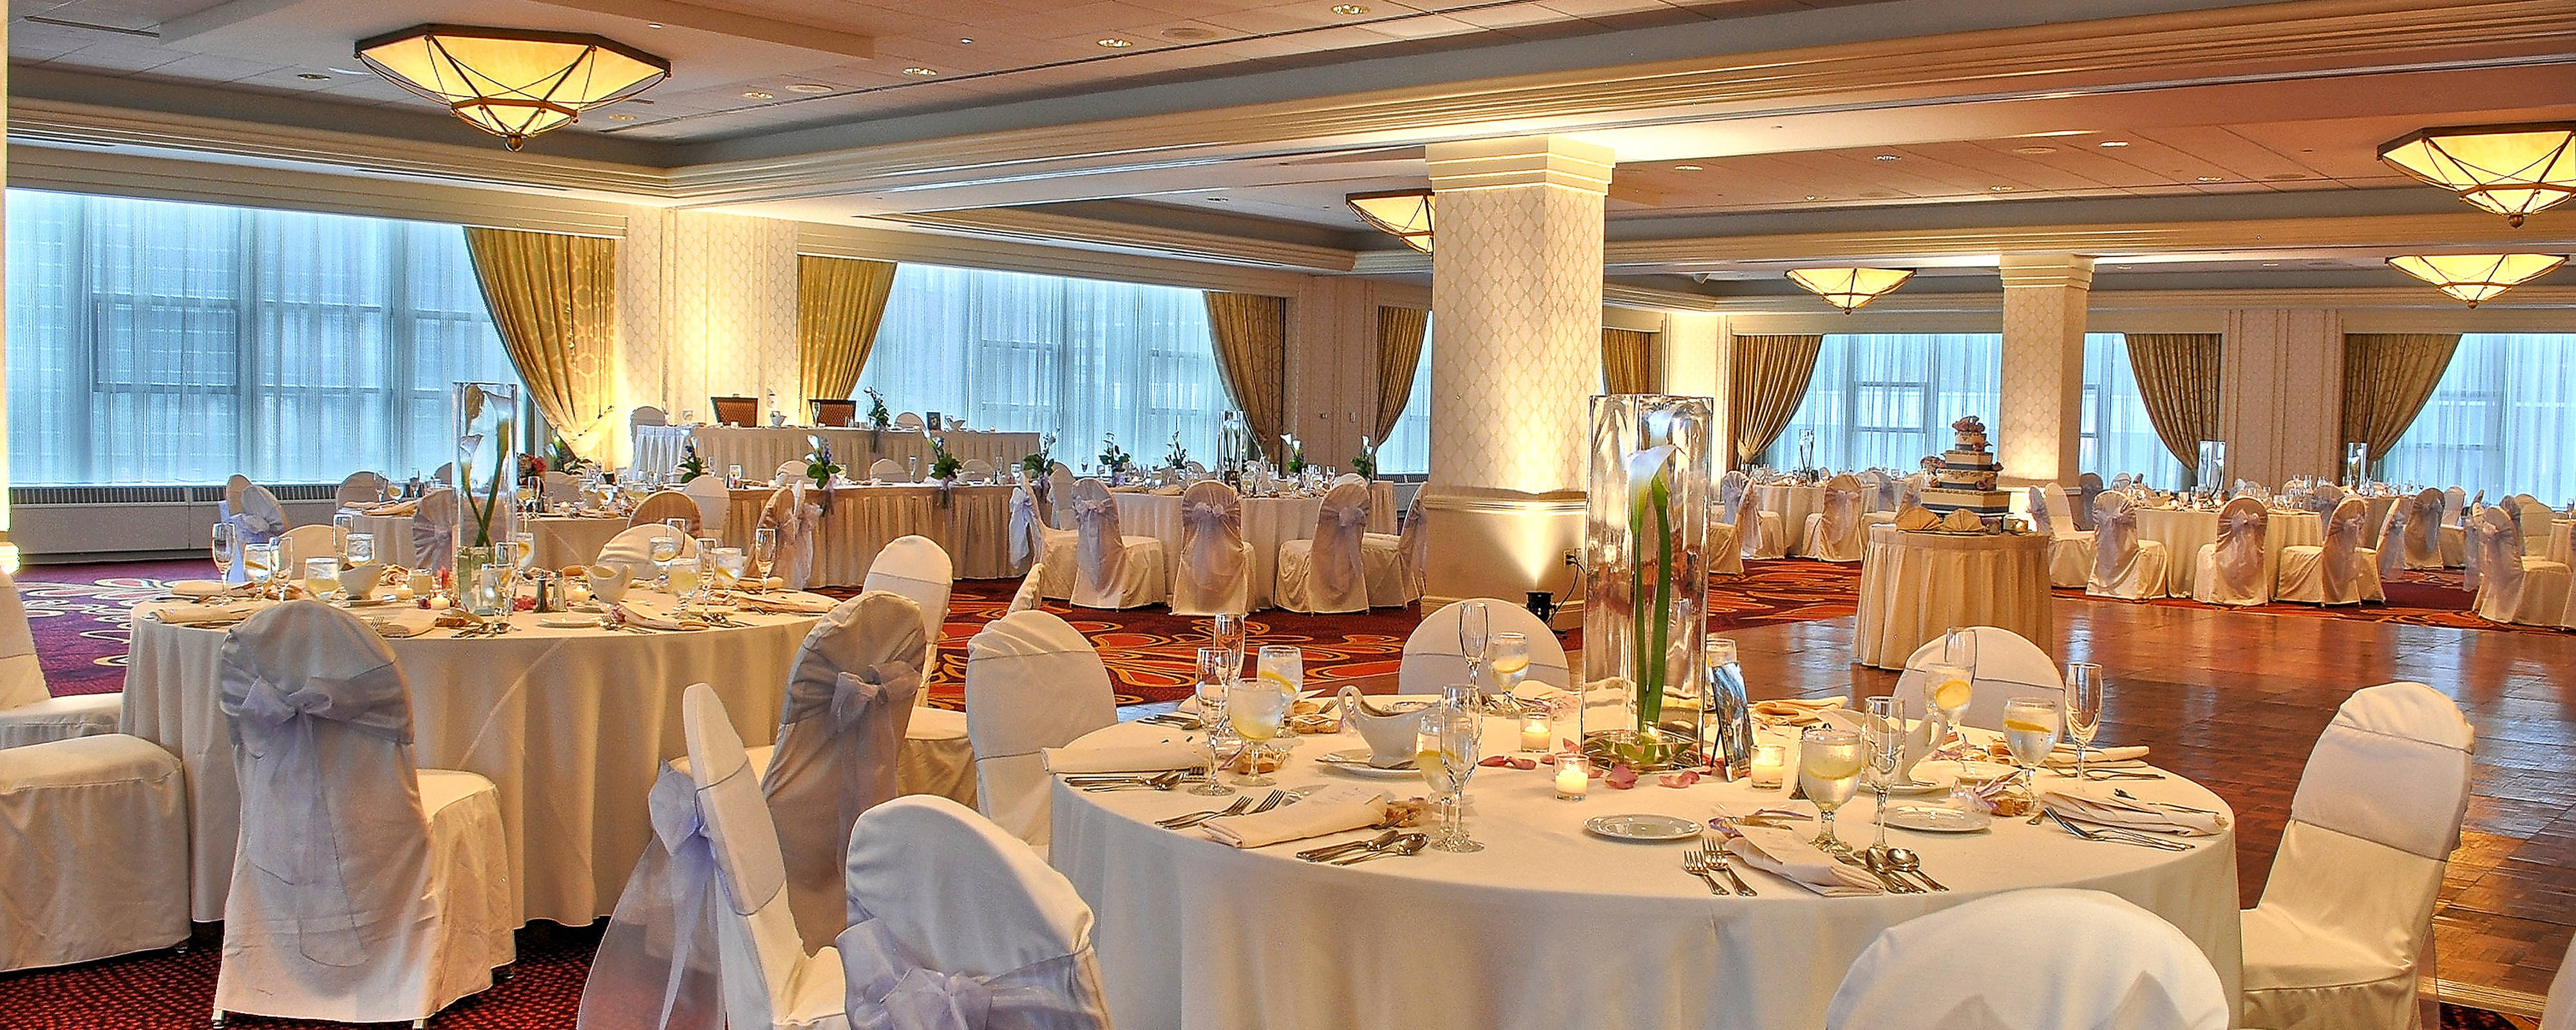 Wedding reception venues pittsburgh pittsburgh marriott city center wedding venue in pittsburgh pennsylvania junglespirit Gallery